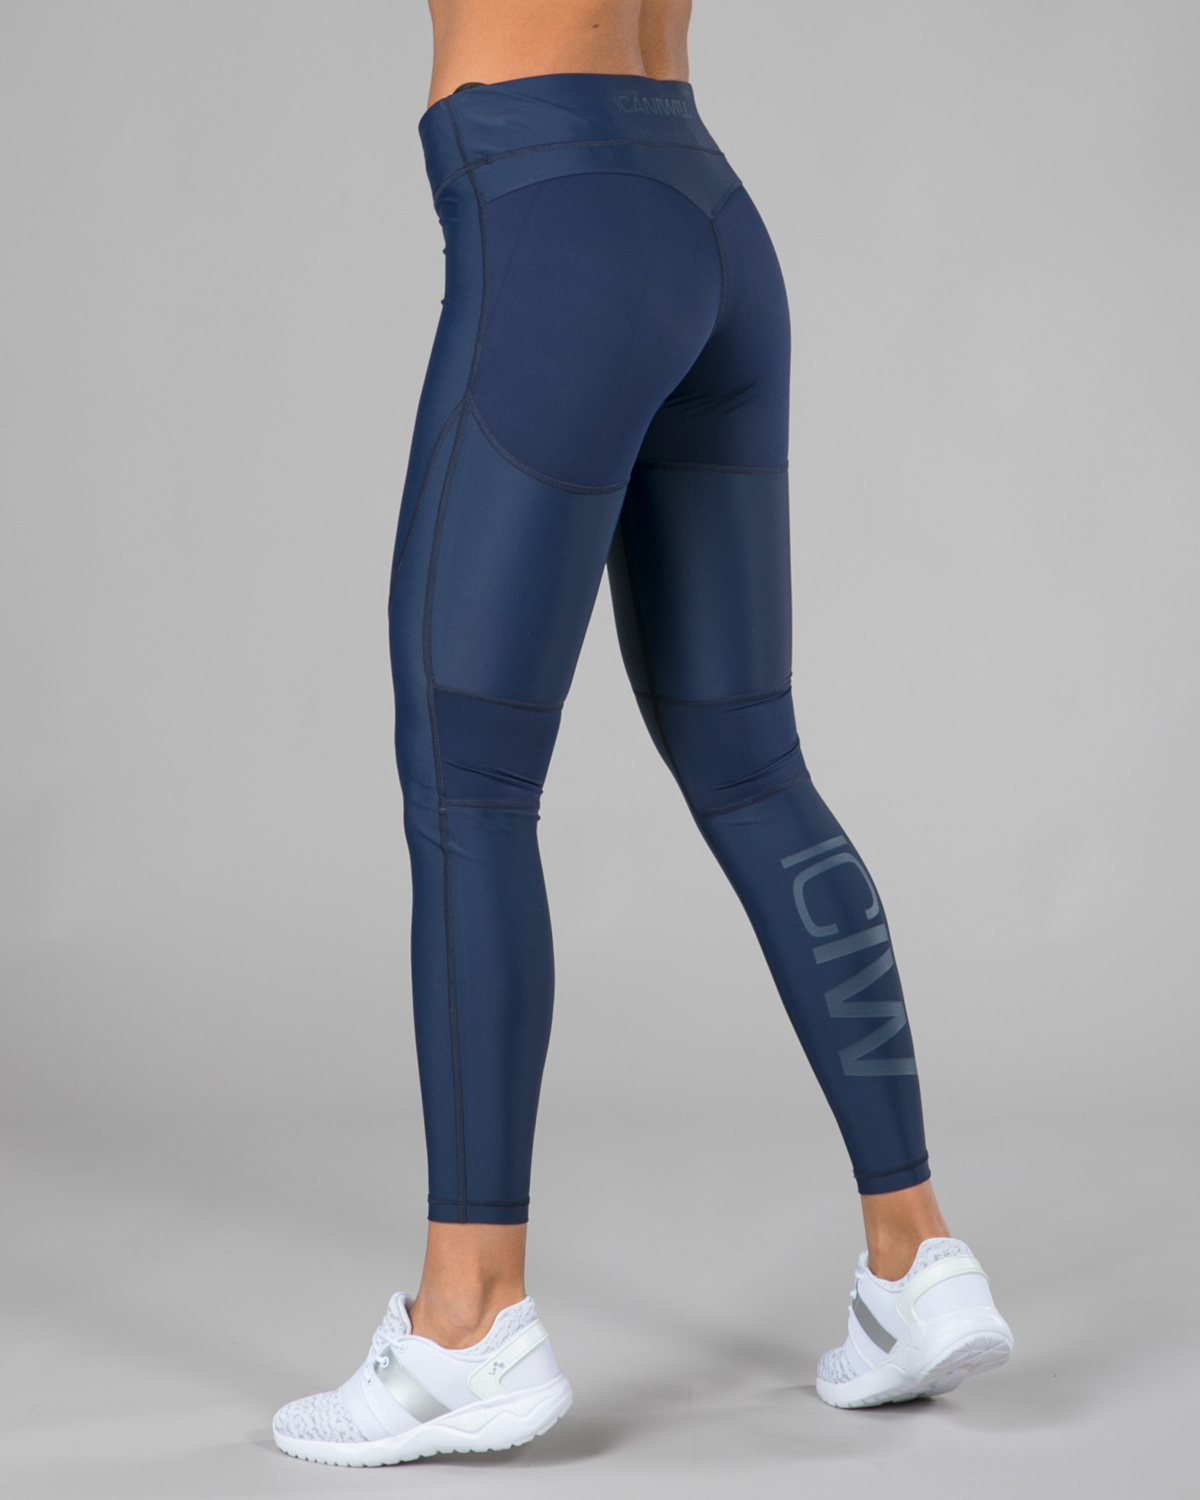 Icaniwill-Shape-Tights-Navy